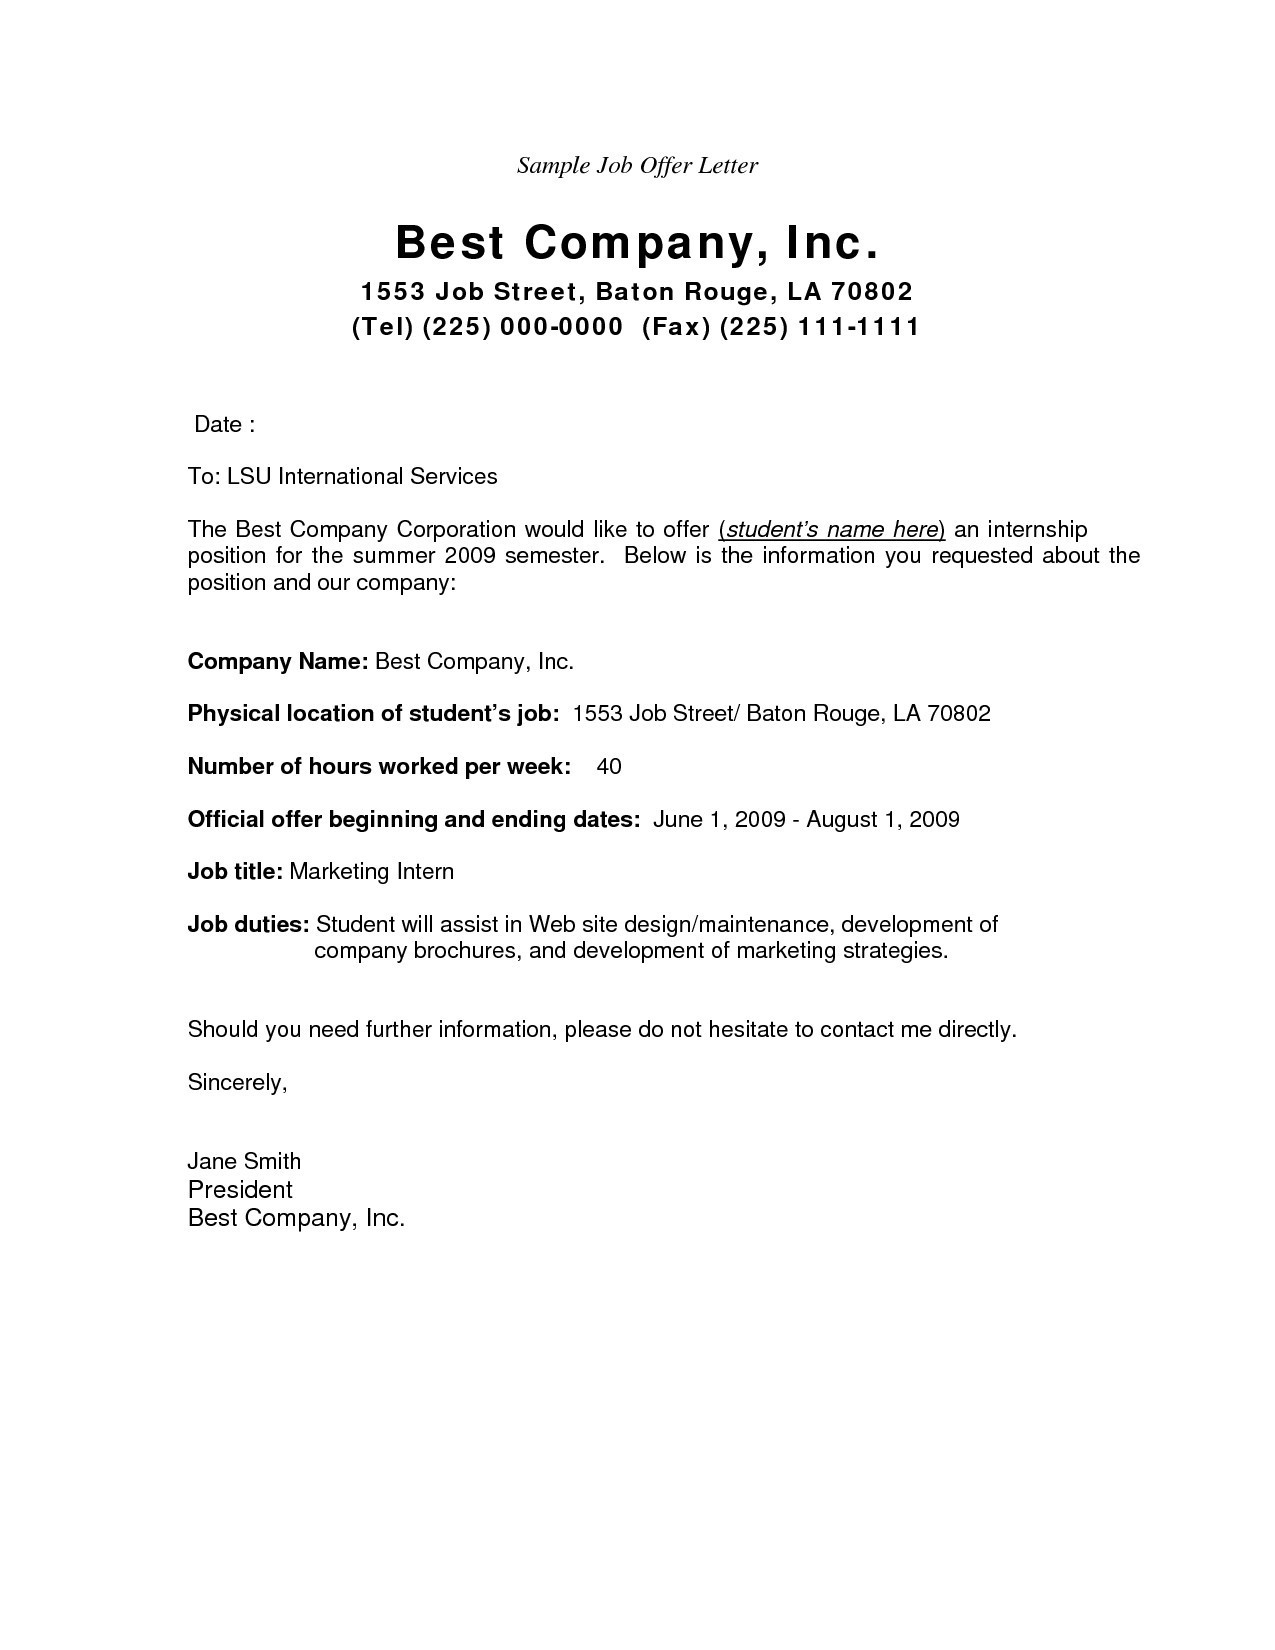 job offer letter template pdf fer letter format doc uae best appointment letter template best